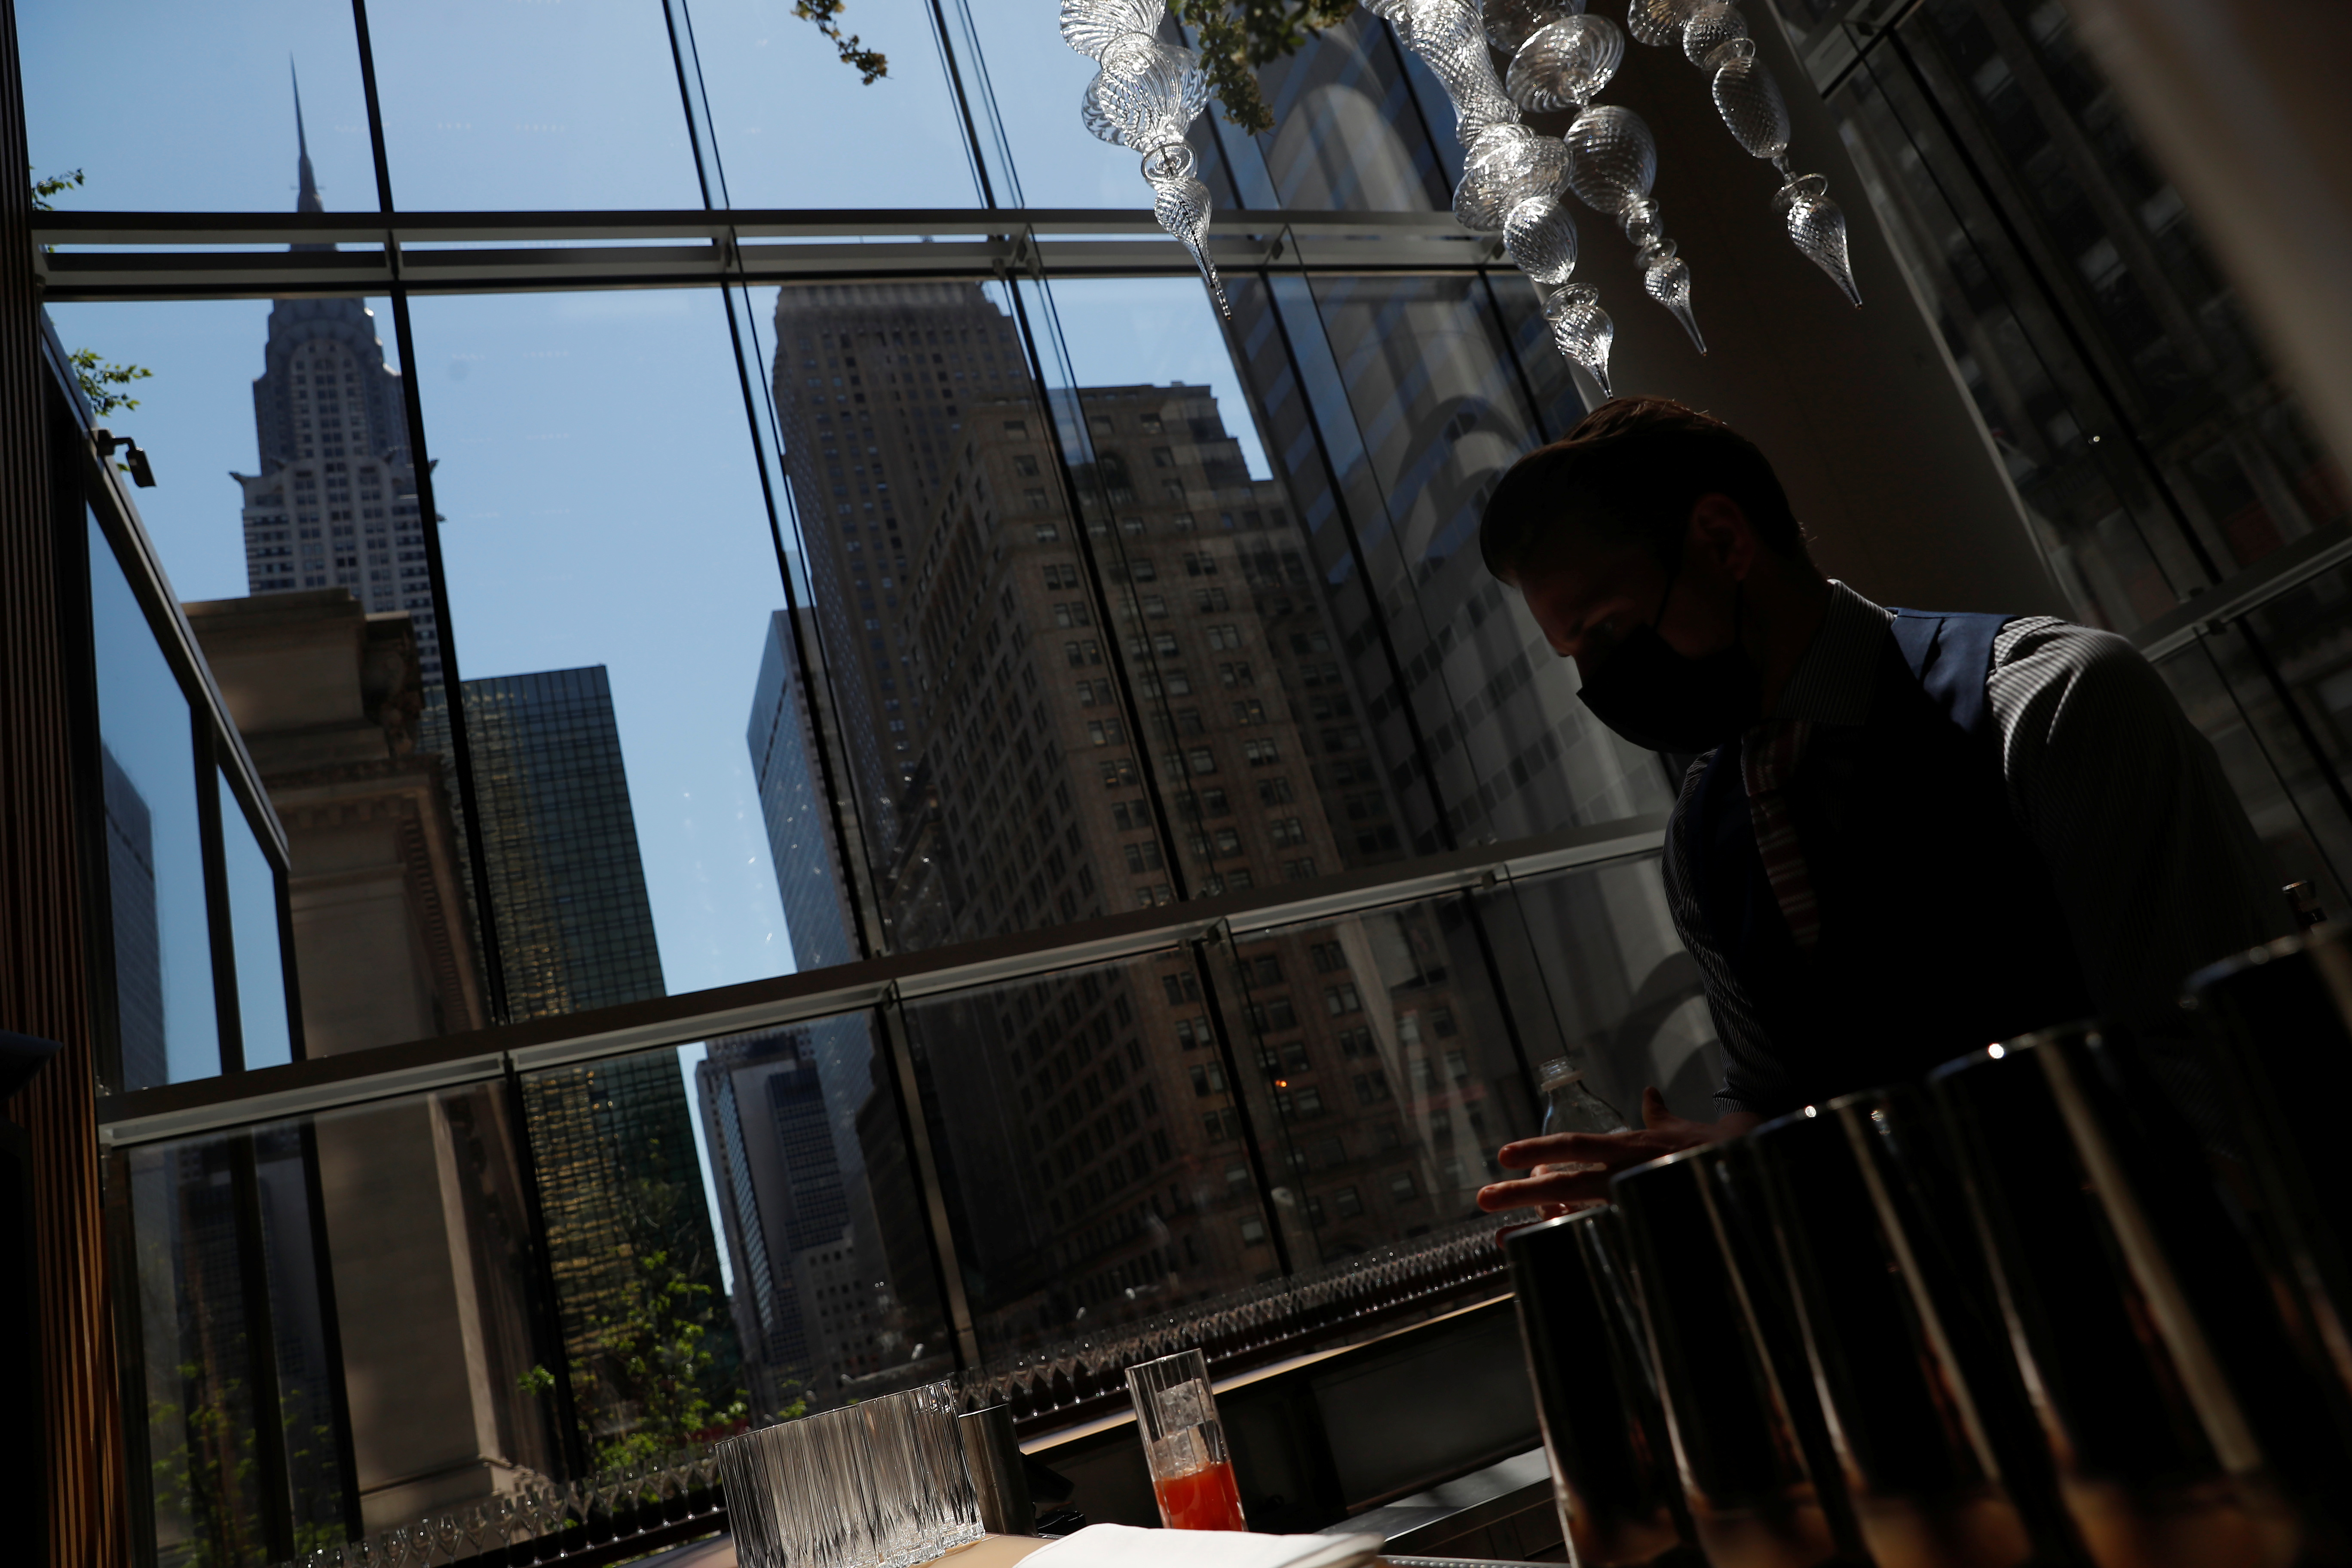 A man works at Chef Daniel Boulud's new restaurant Le Pavillon at One Vanderbilt in New York City, U.S., May 19, 2021. REUTERS/Shannon Stapleton